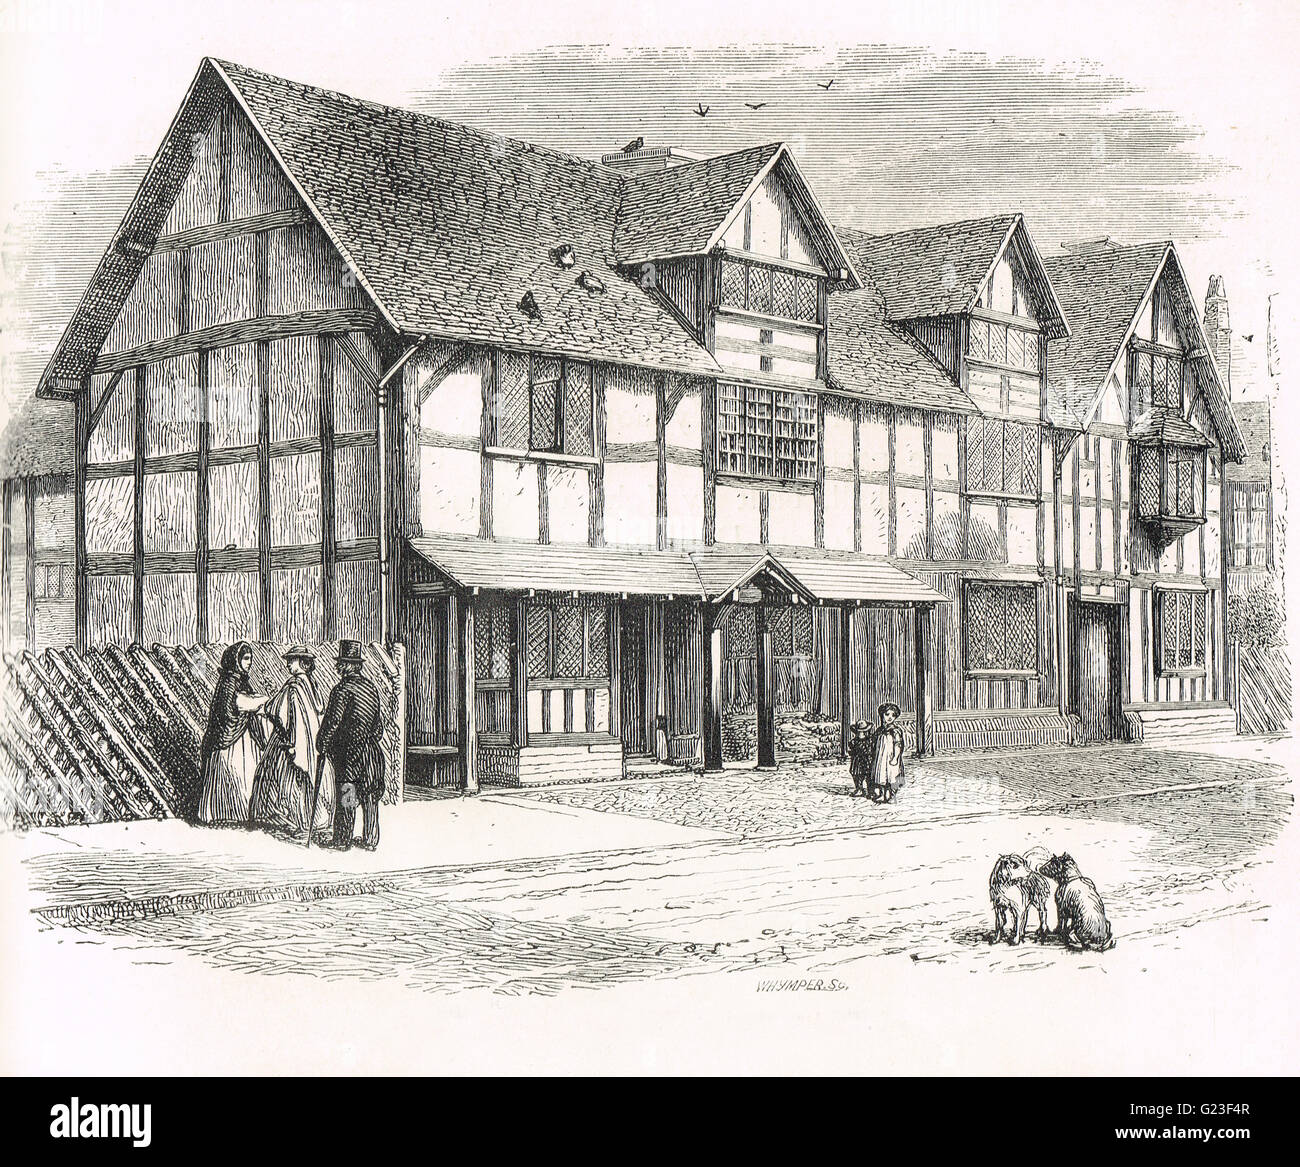 an analysis of william shakespeare born in stratford upon avon warwickshire c england William shakespeare,  born - abt 1531 - (warwickshire) england:  john shakespeare moved to stratford-upon-avon in 1551, where he became a successful businessman .